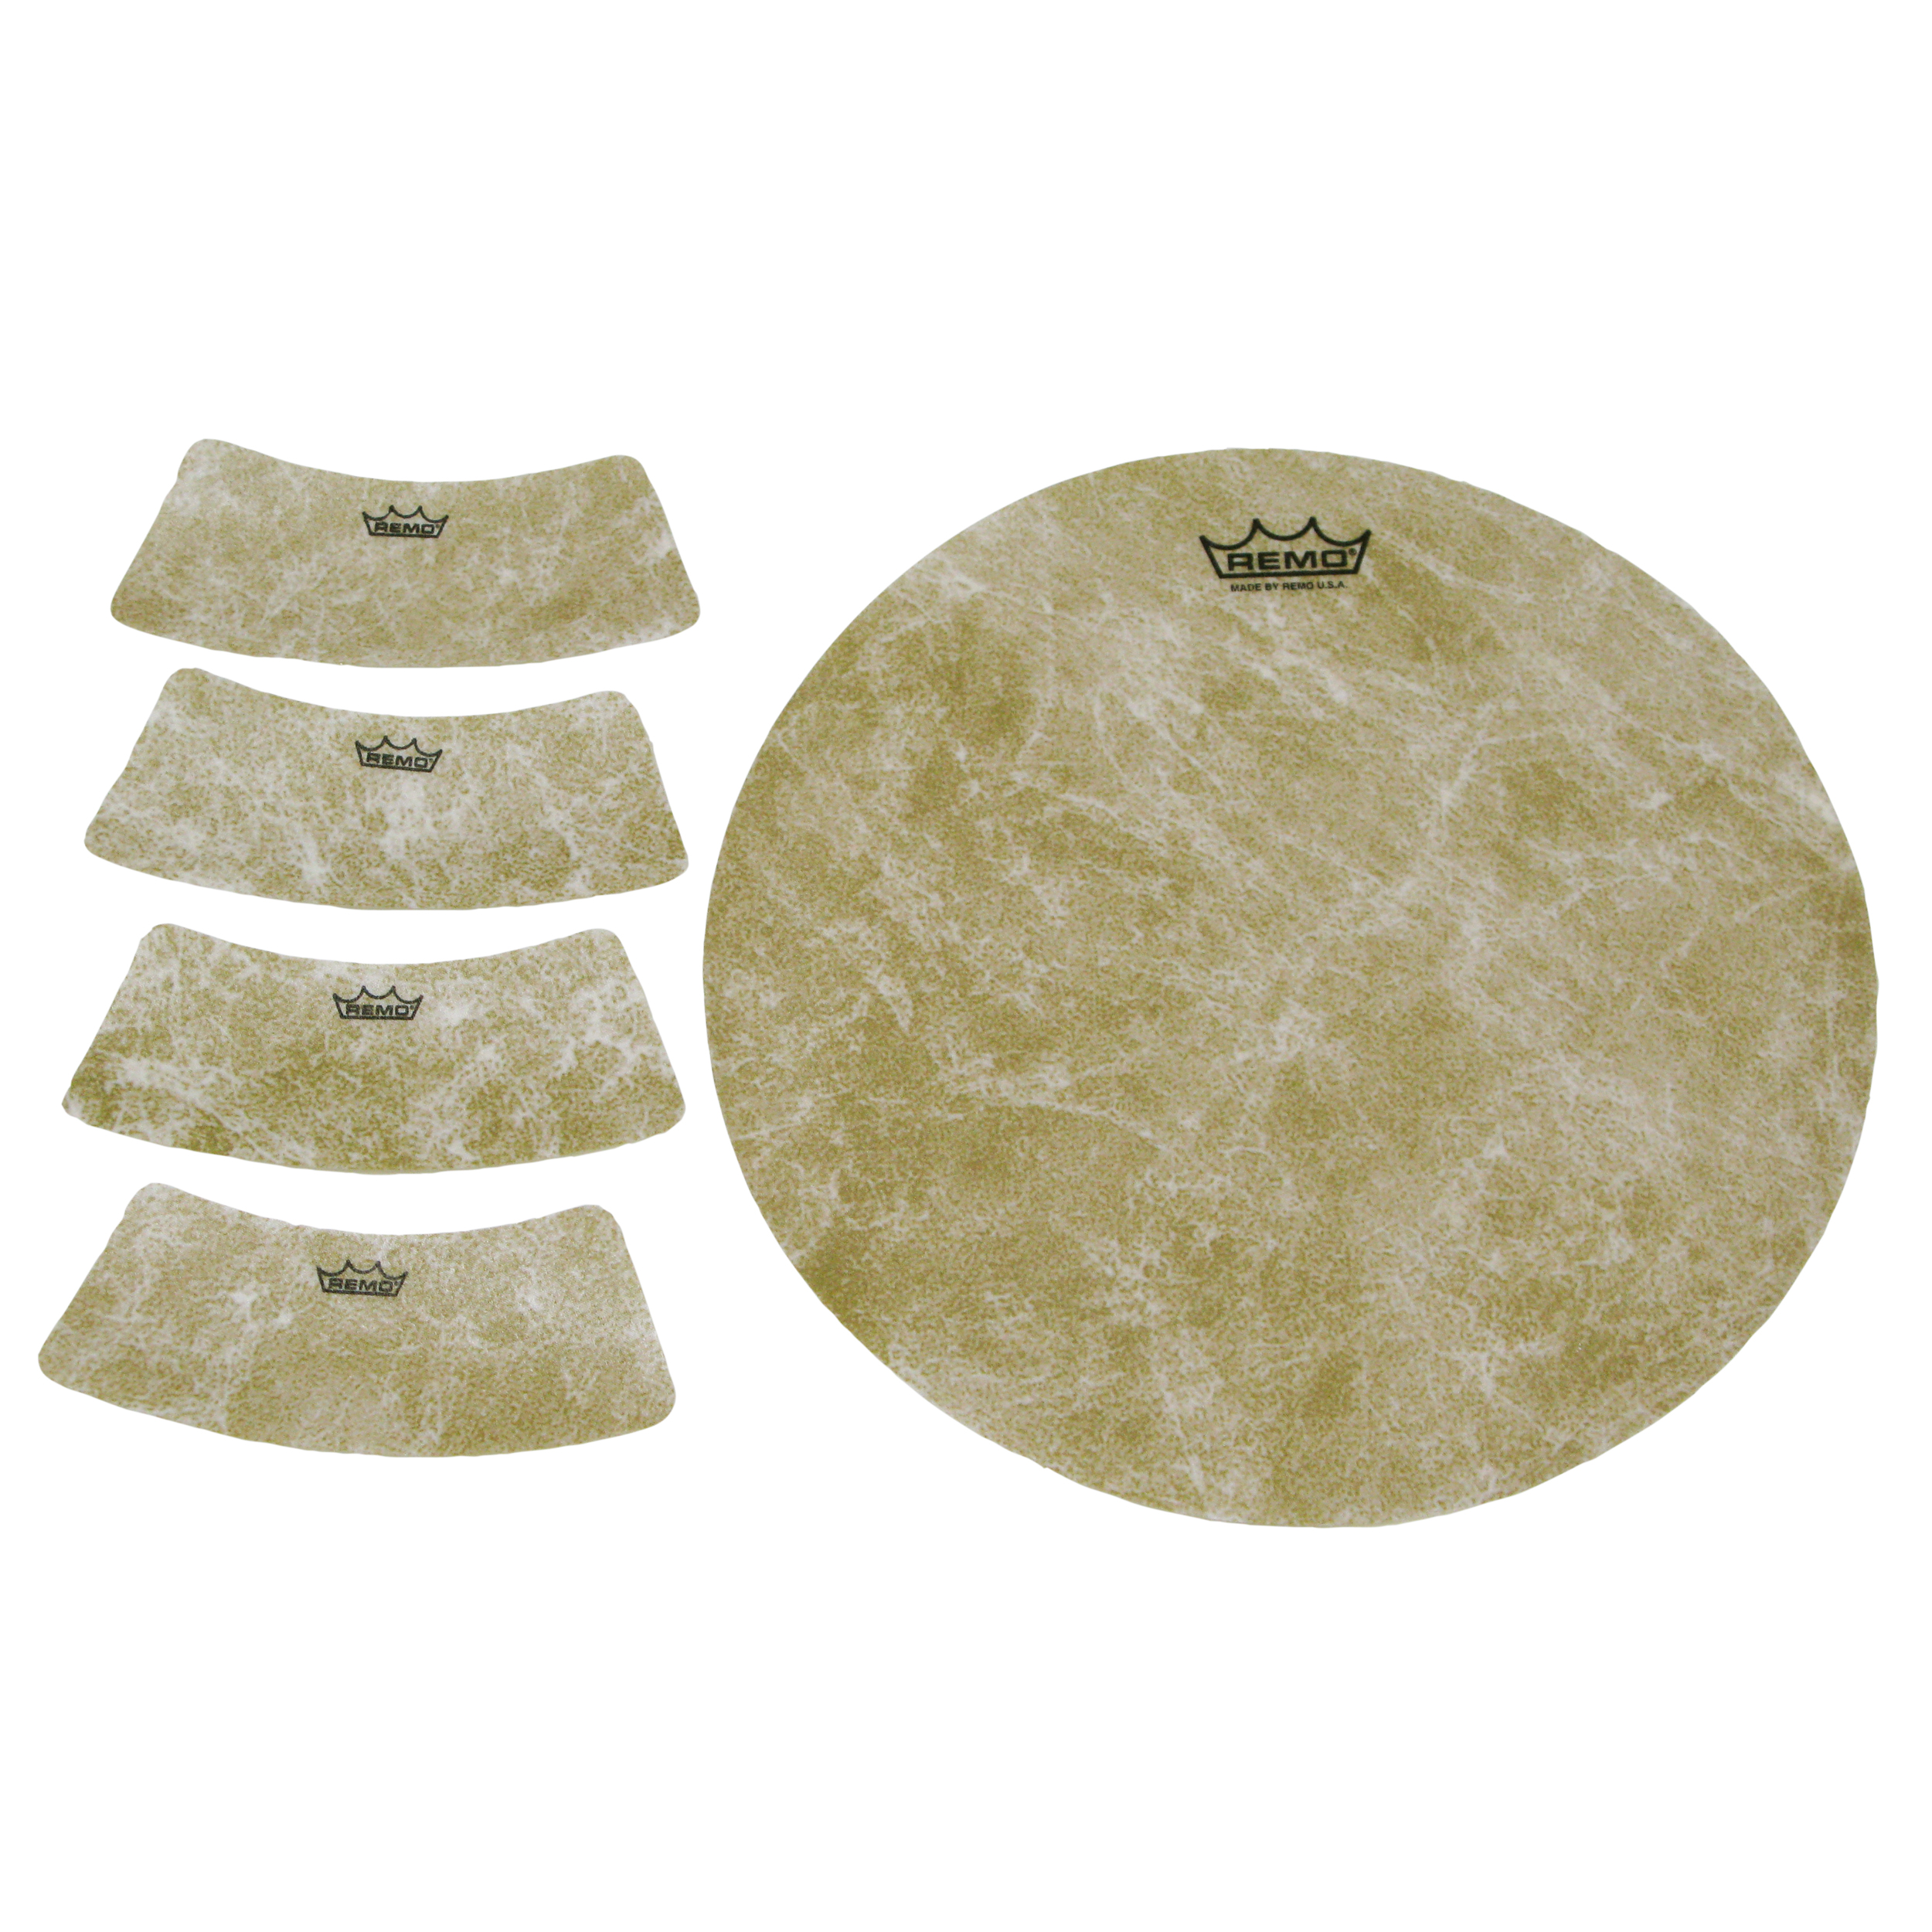 "Remo 9.75"" Circle and 4 Small Texture Targets"